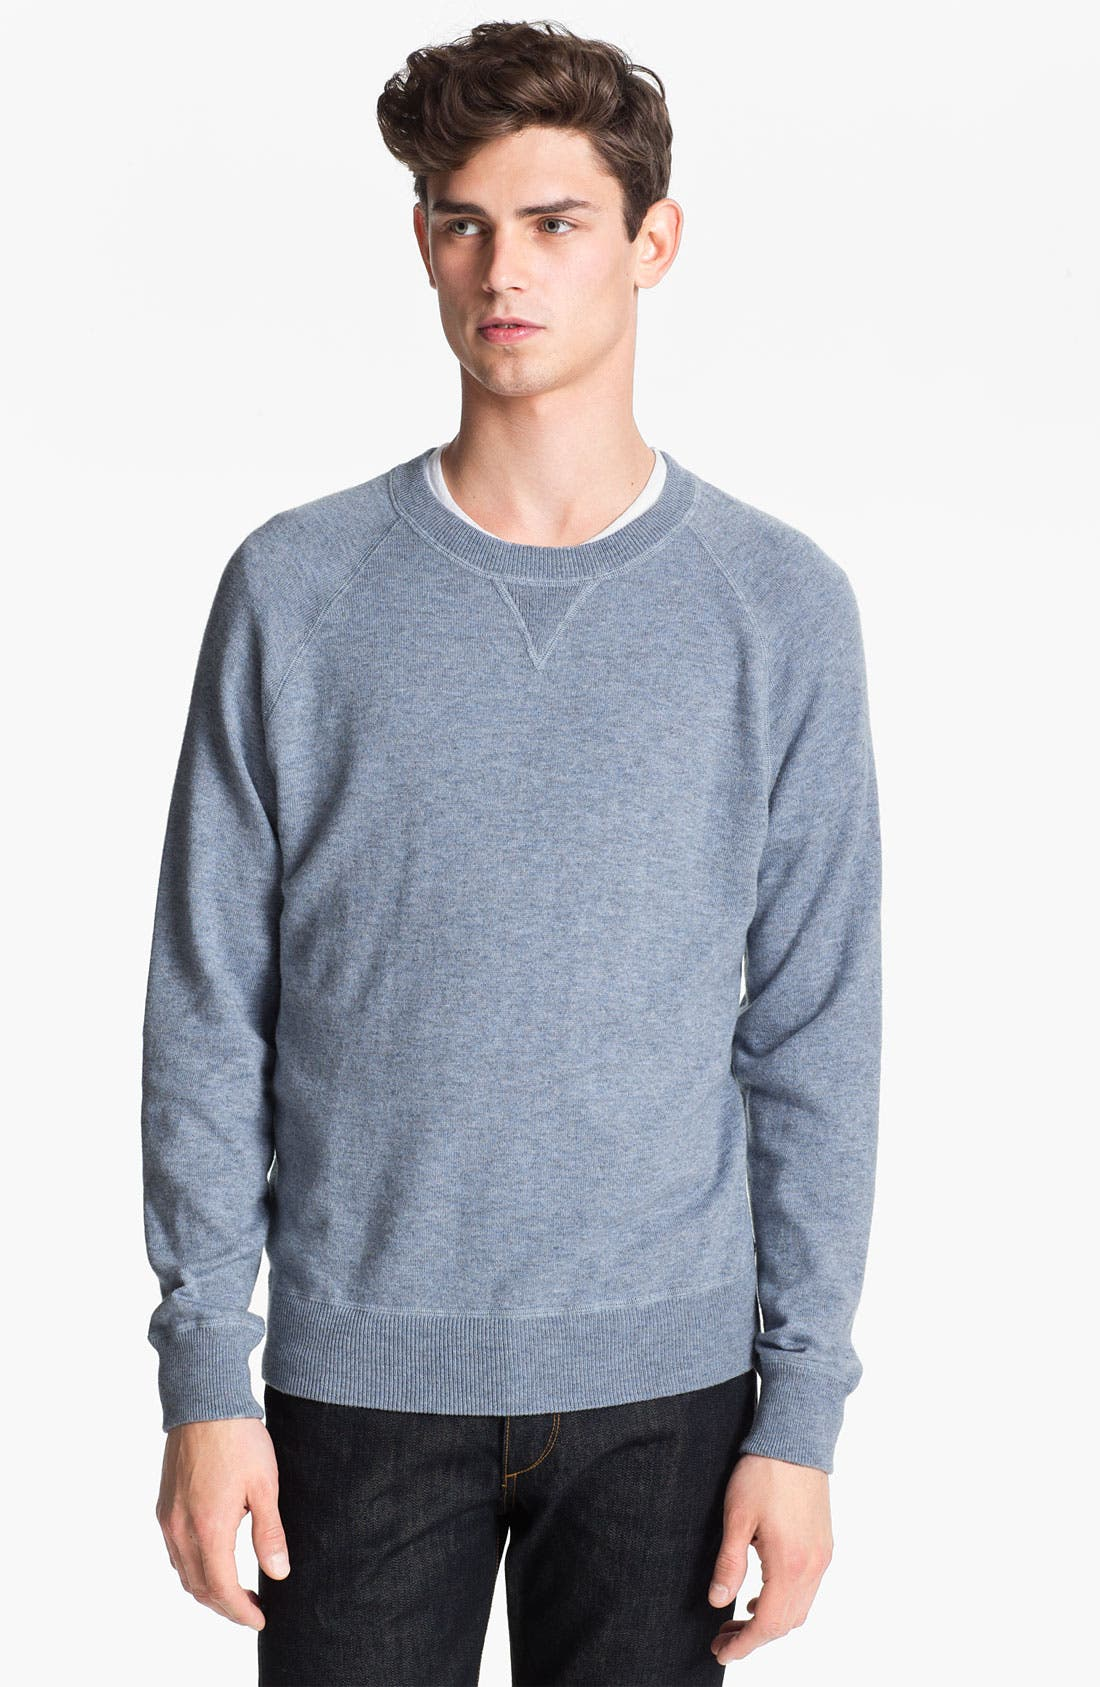 Alternate Image 1 Selected - Cardigan by Lynne Hiriak 'Dean' French Terry Crewneck Sweatshirt